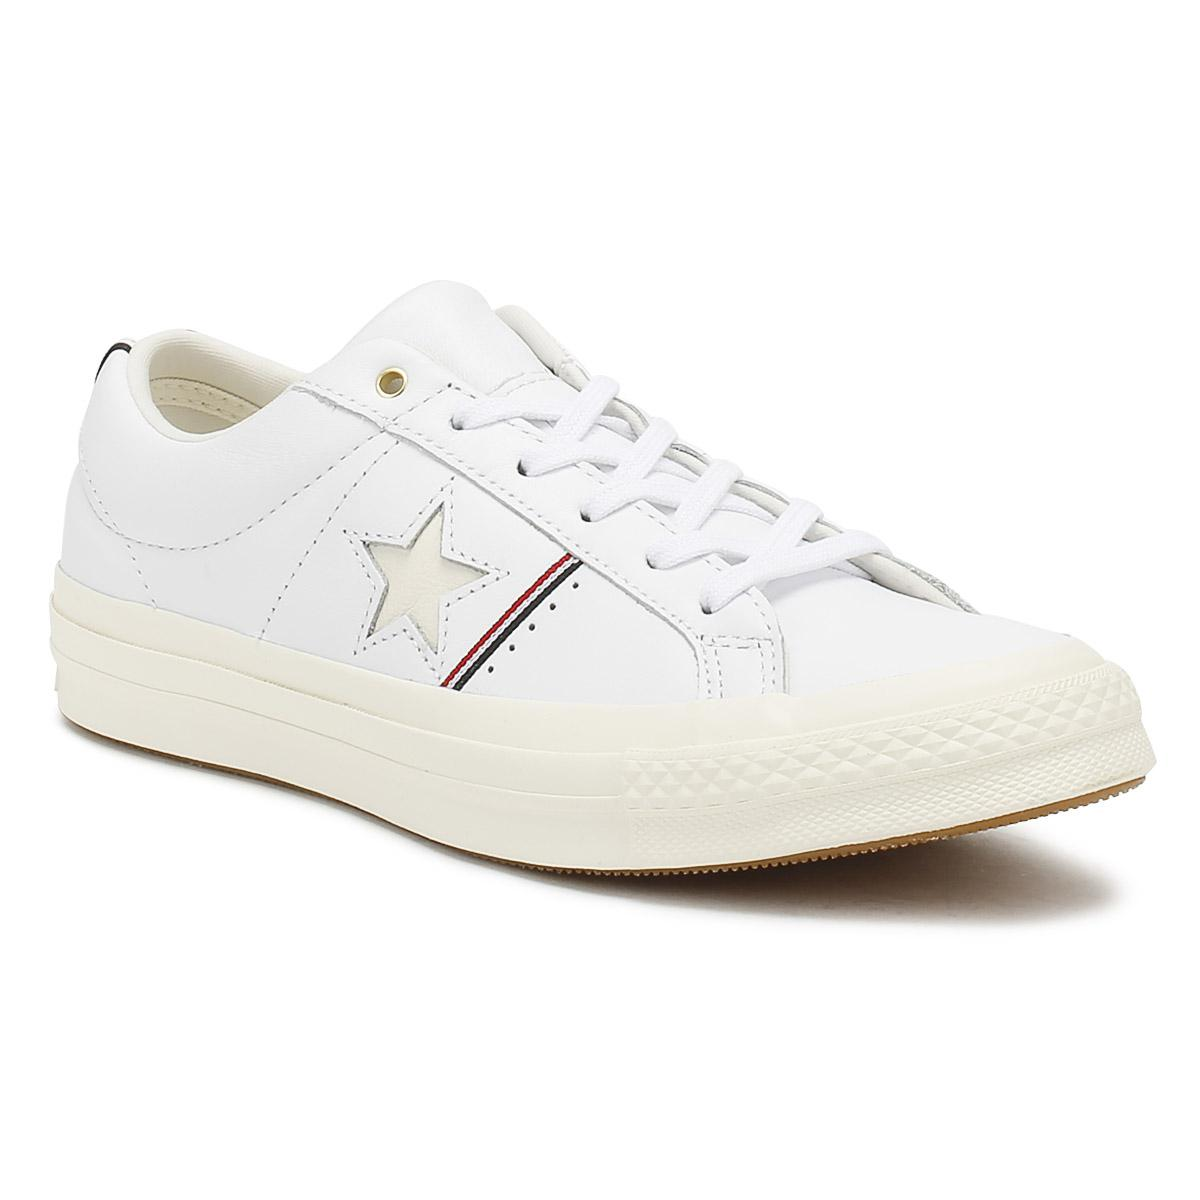 Converse One Star Shoes Egret White Red